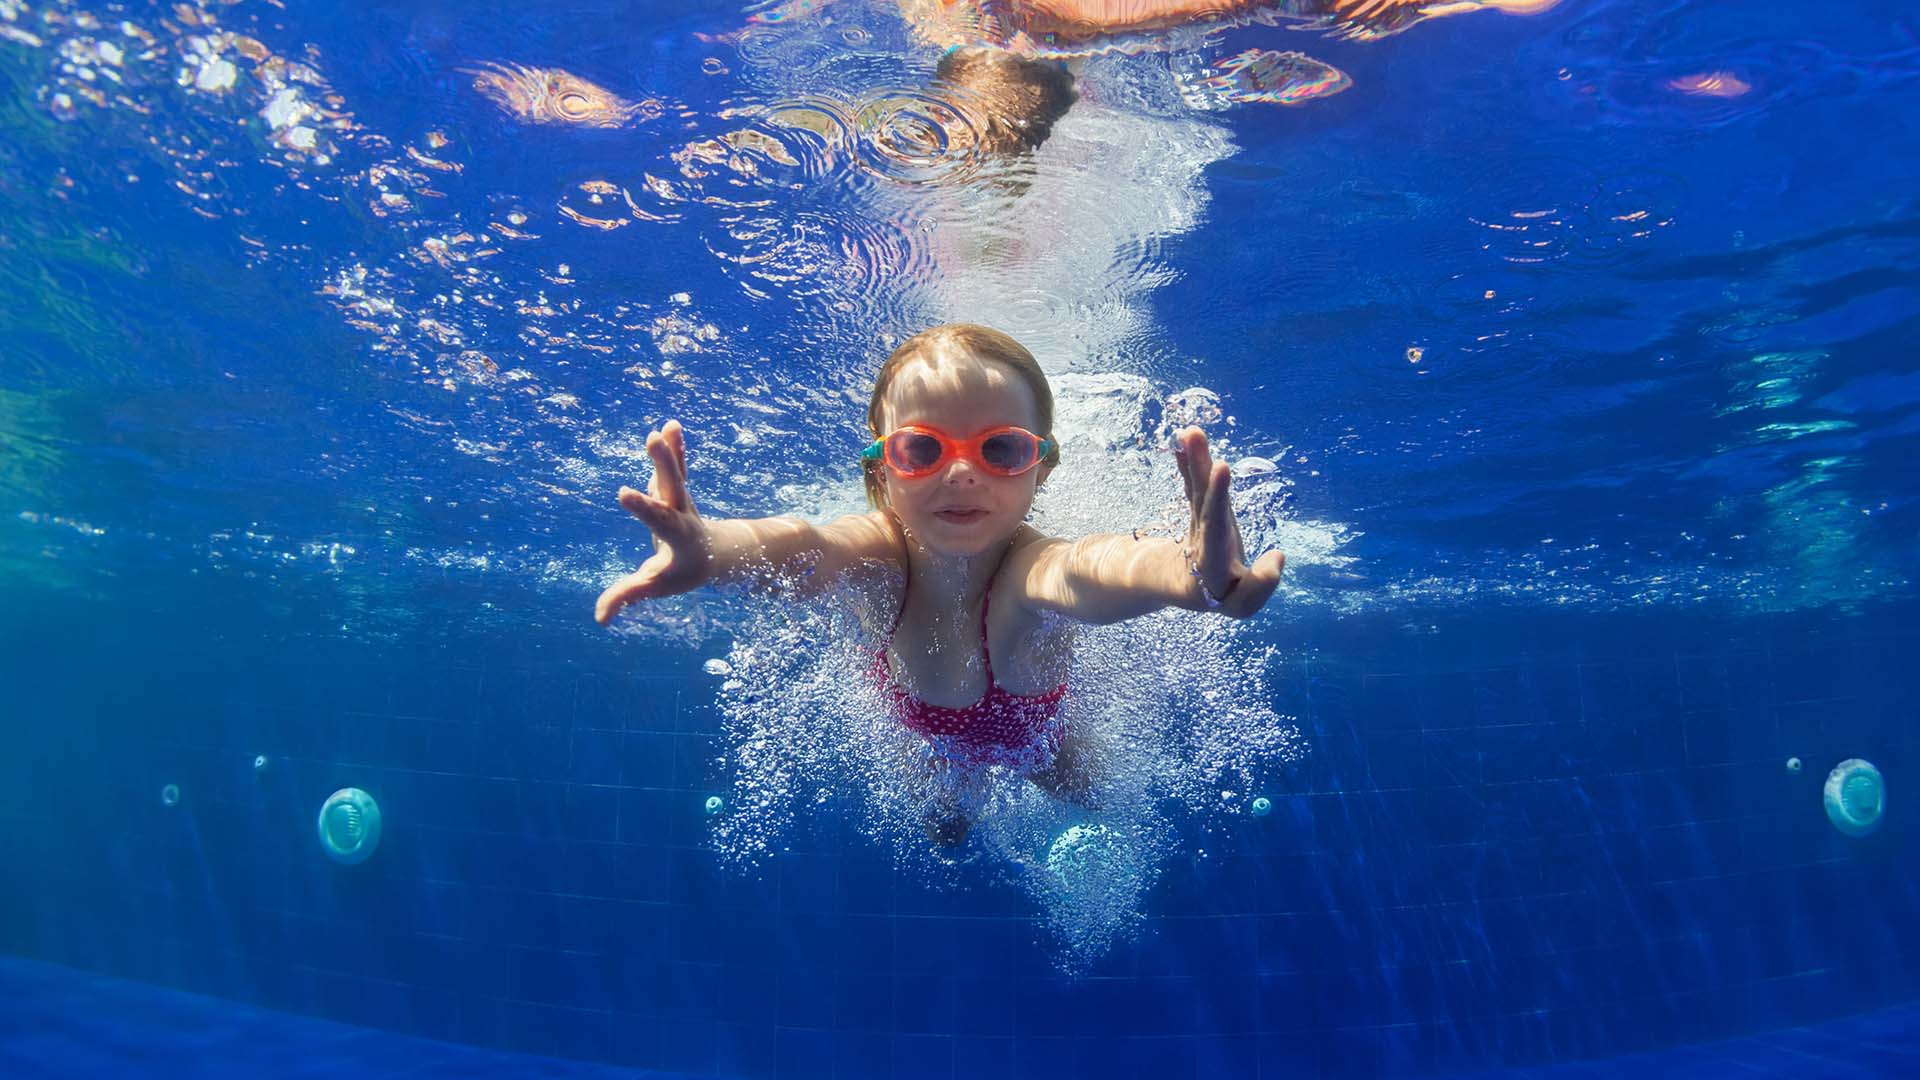 Child swimming in clean blue pool